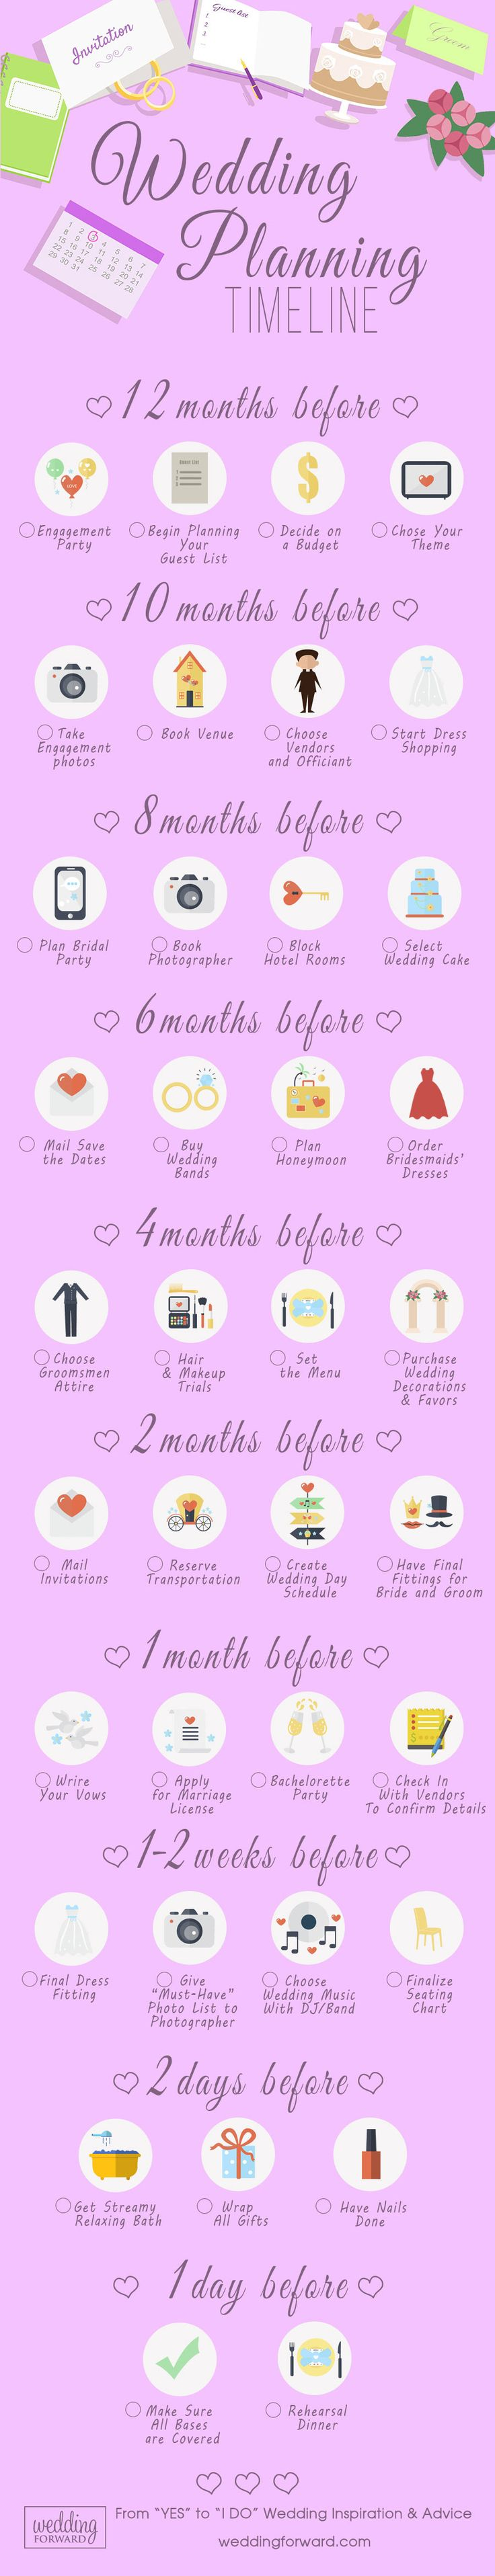 12 Month Wedding Planning Timeline ❤️ Now it's time to begin the wedding planning process and you've got hundreds of ideas running through your head. See more: http://www.weddingforward.com/12-month-wedding-planning-timeline/ #wedding #planning #checklist